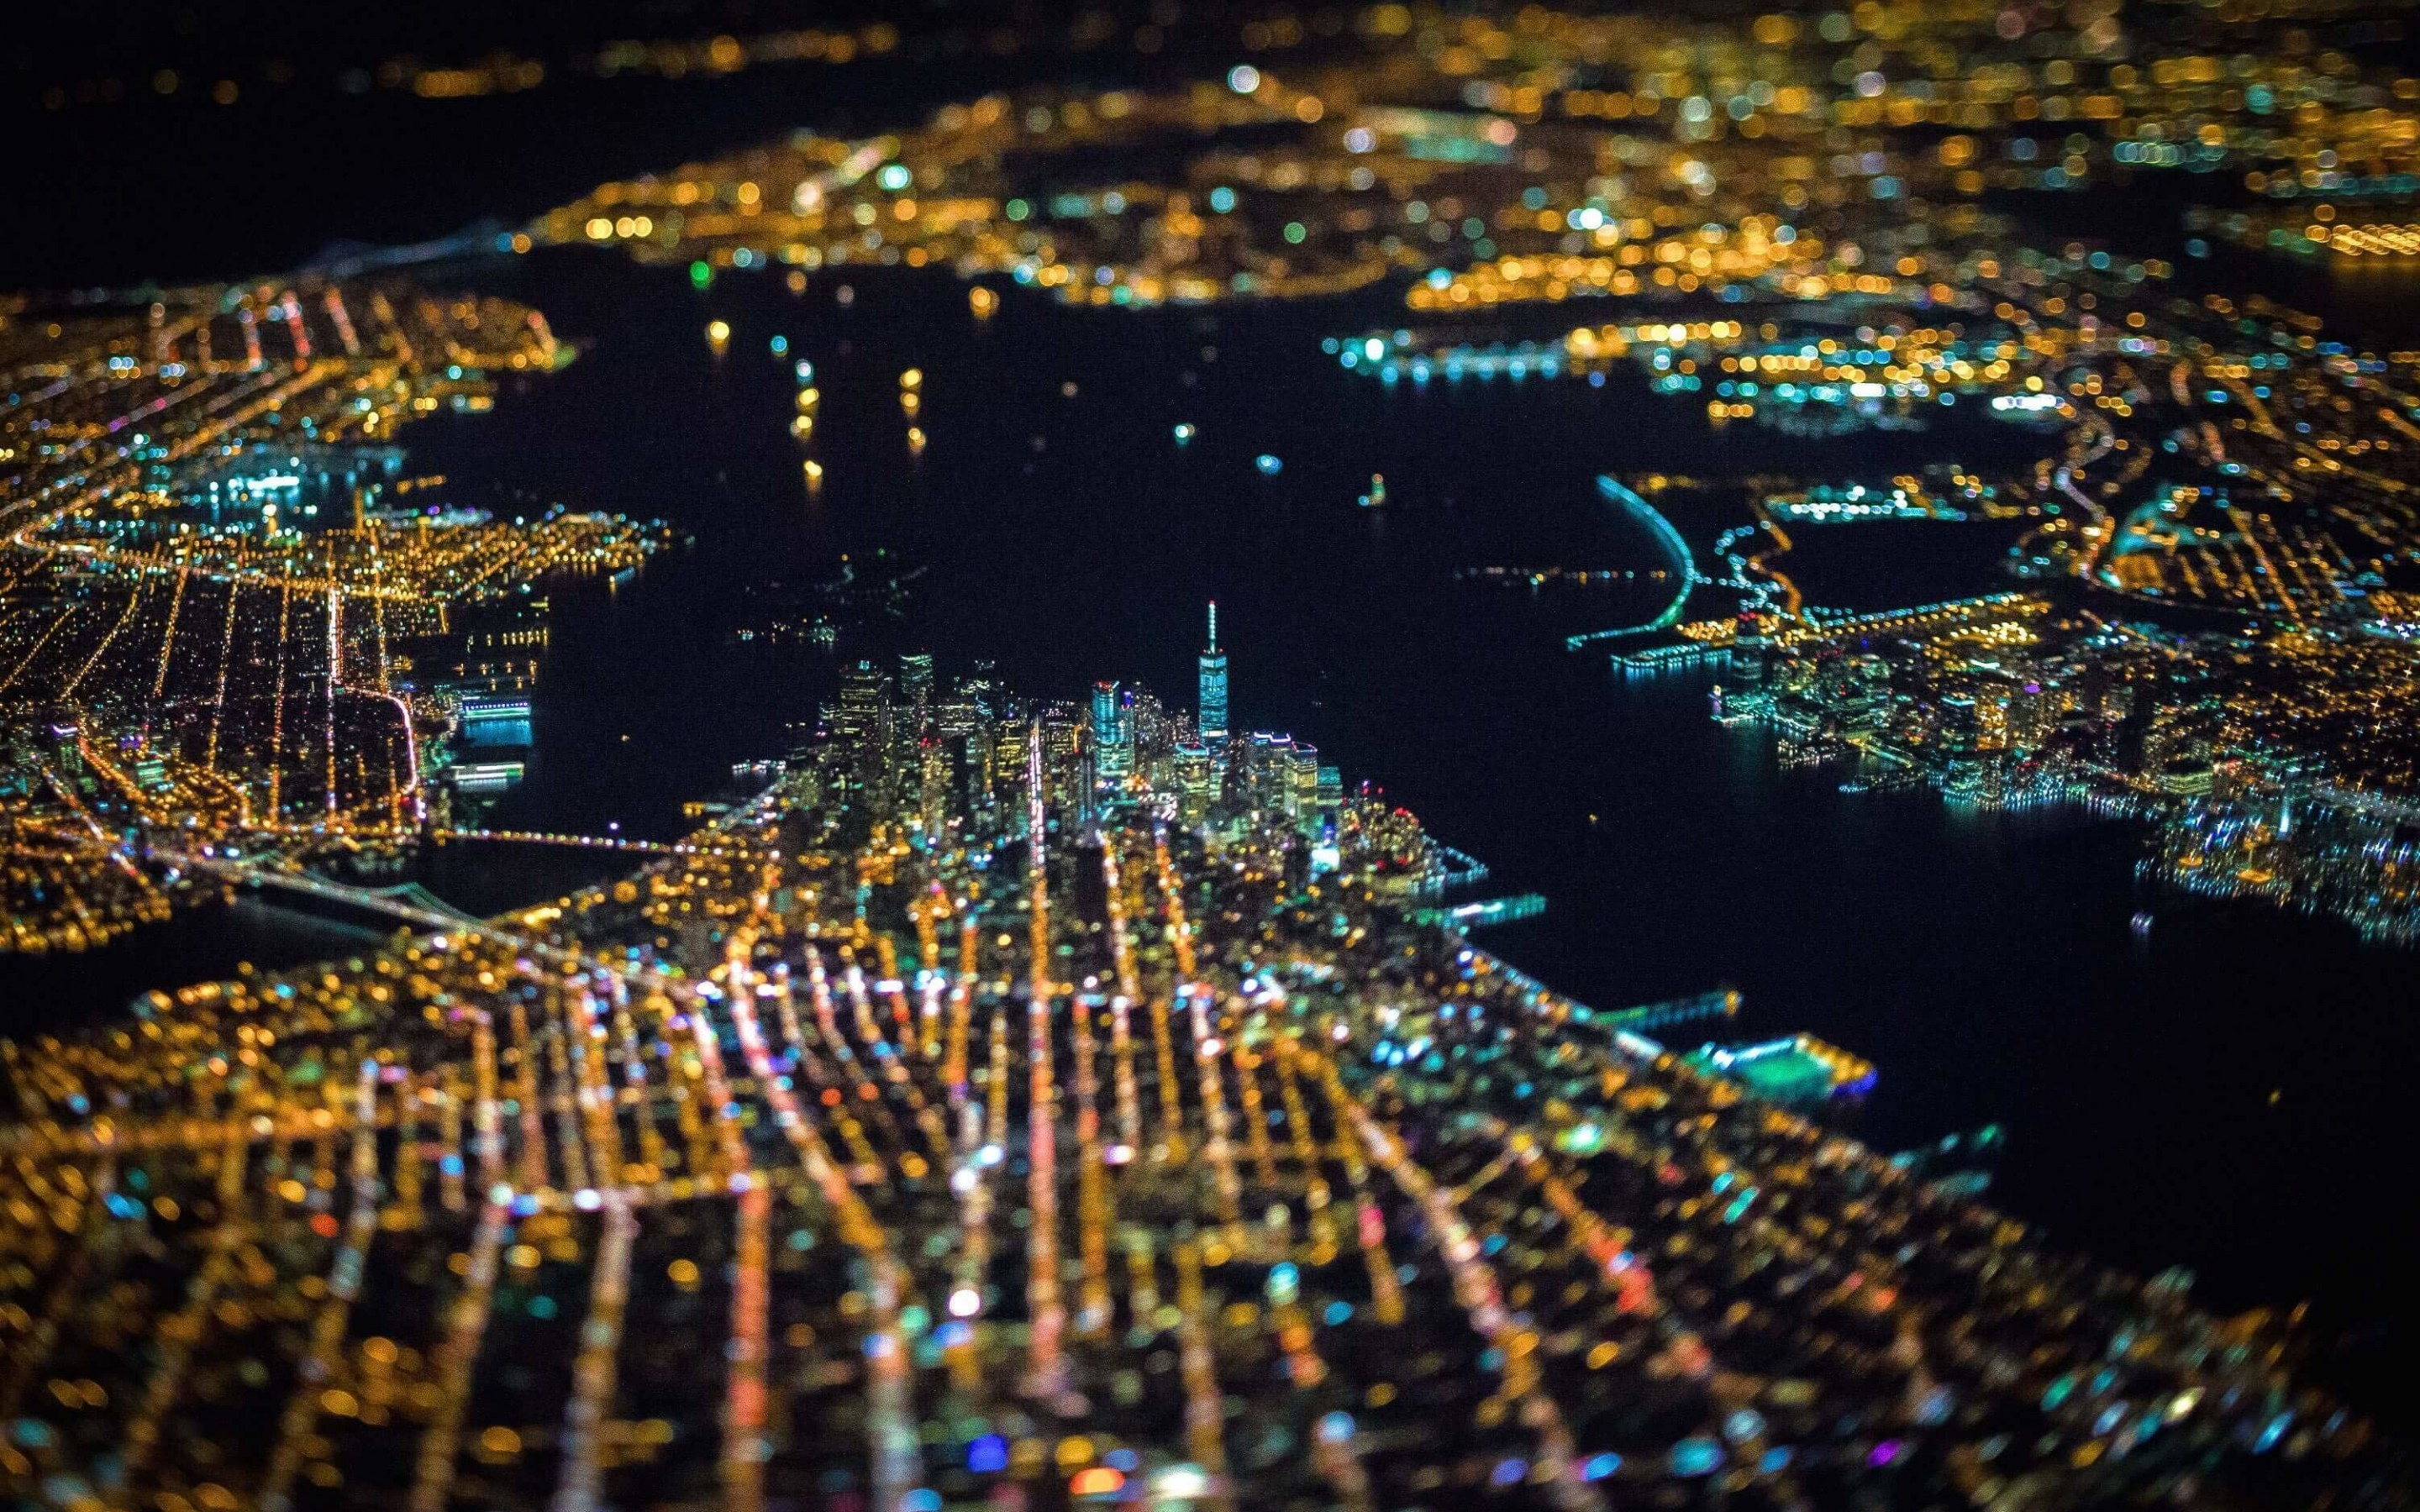 New York City From Above Wallpaper for Desktop 2880x1800